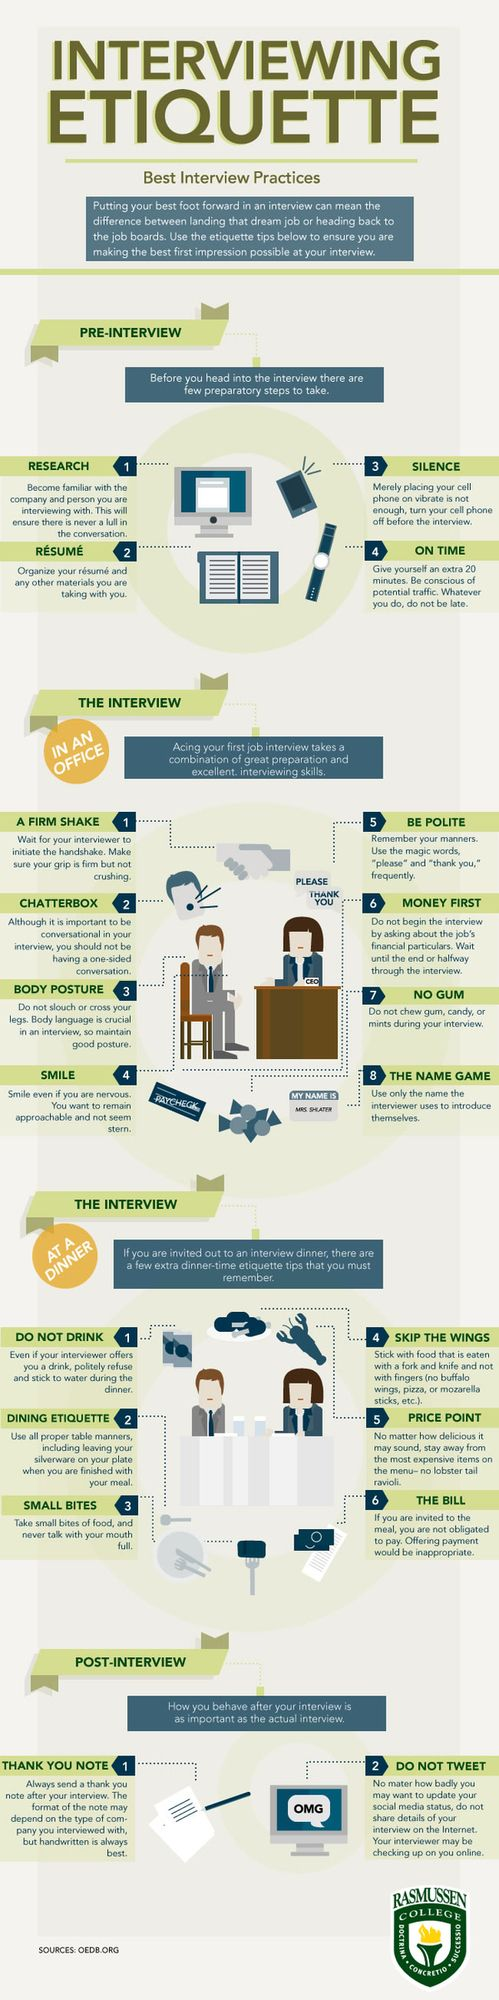 Interviewing etiquette - featuring best interviewing practices. Re-pinned by #Europass